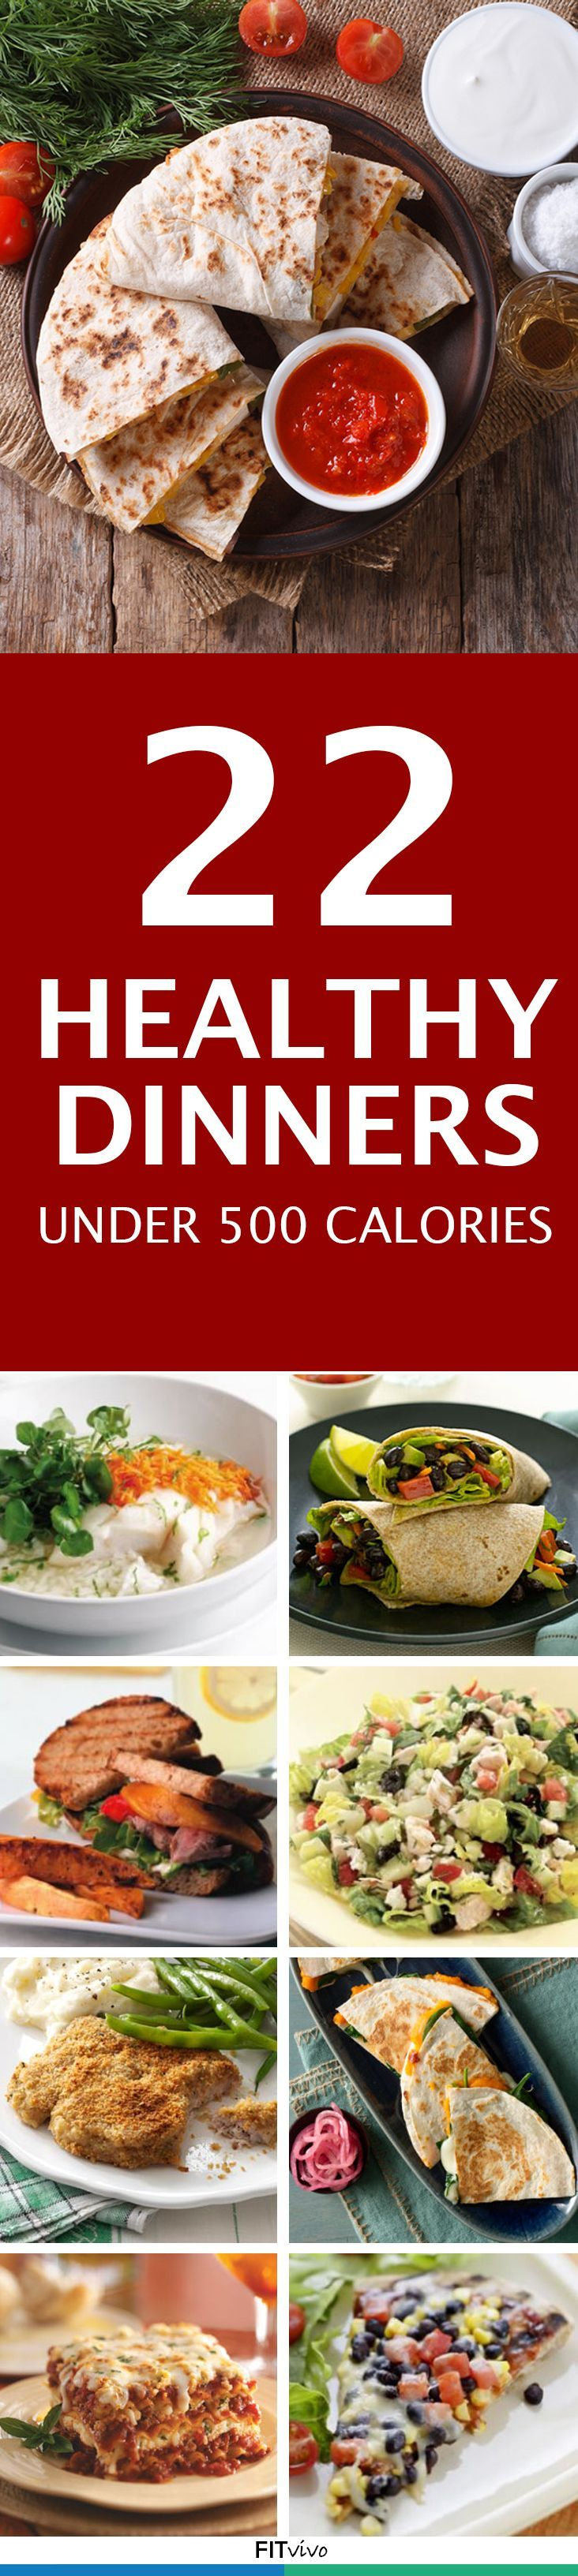 22 healthy dinner recipes for the family. Guilt-free, Low calorie and affordable for a family of 4 on a budget. With the light calorie count, the meals are also great for weight loss. Includes chicken, casseroles. Kids will love these…